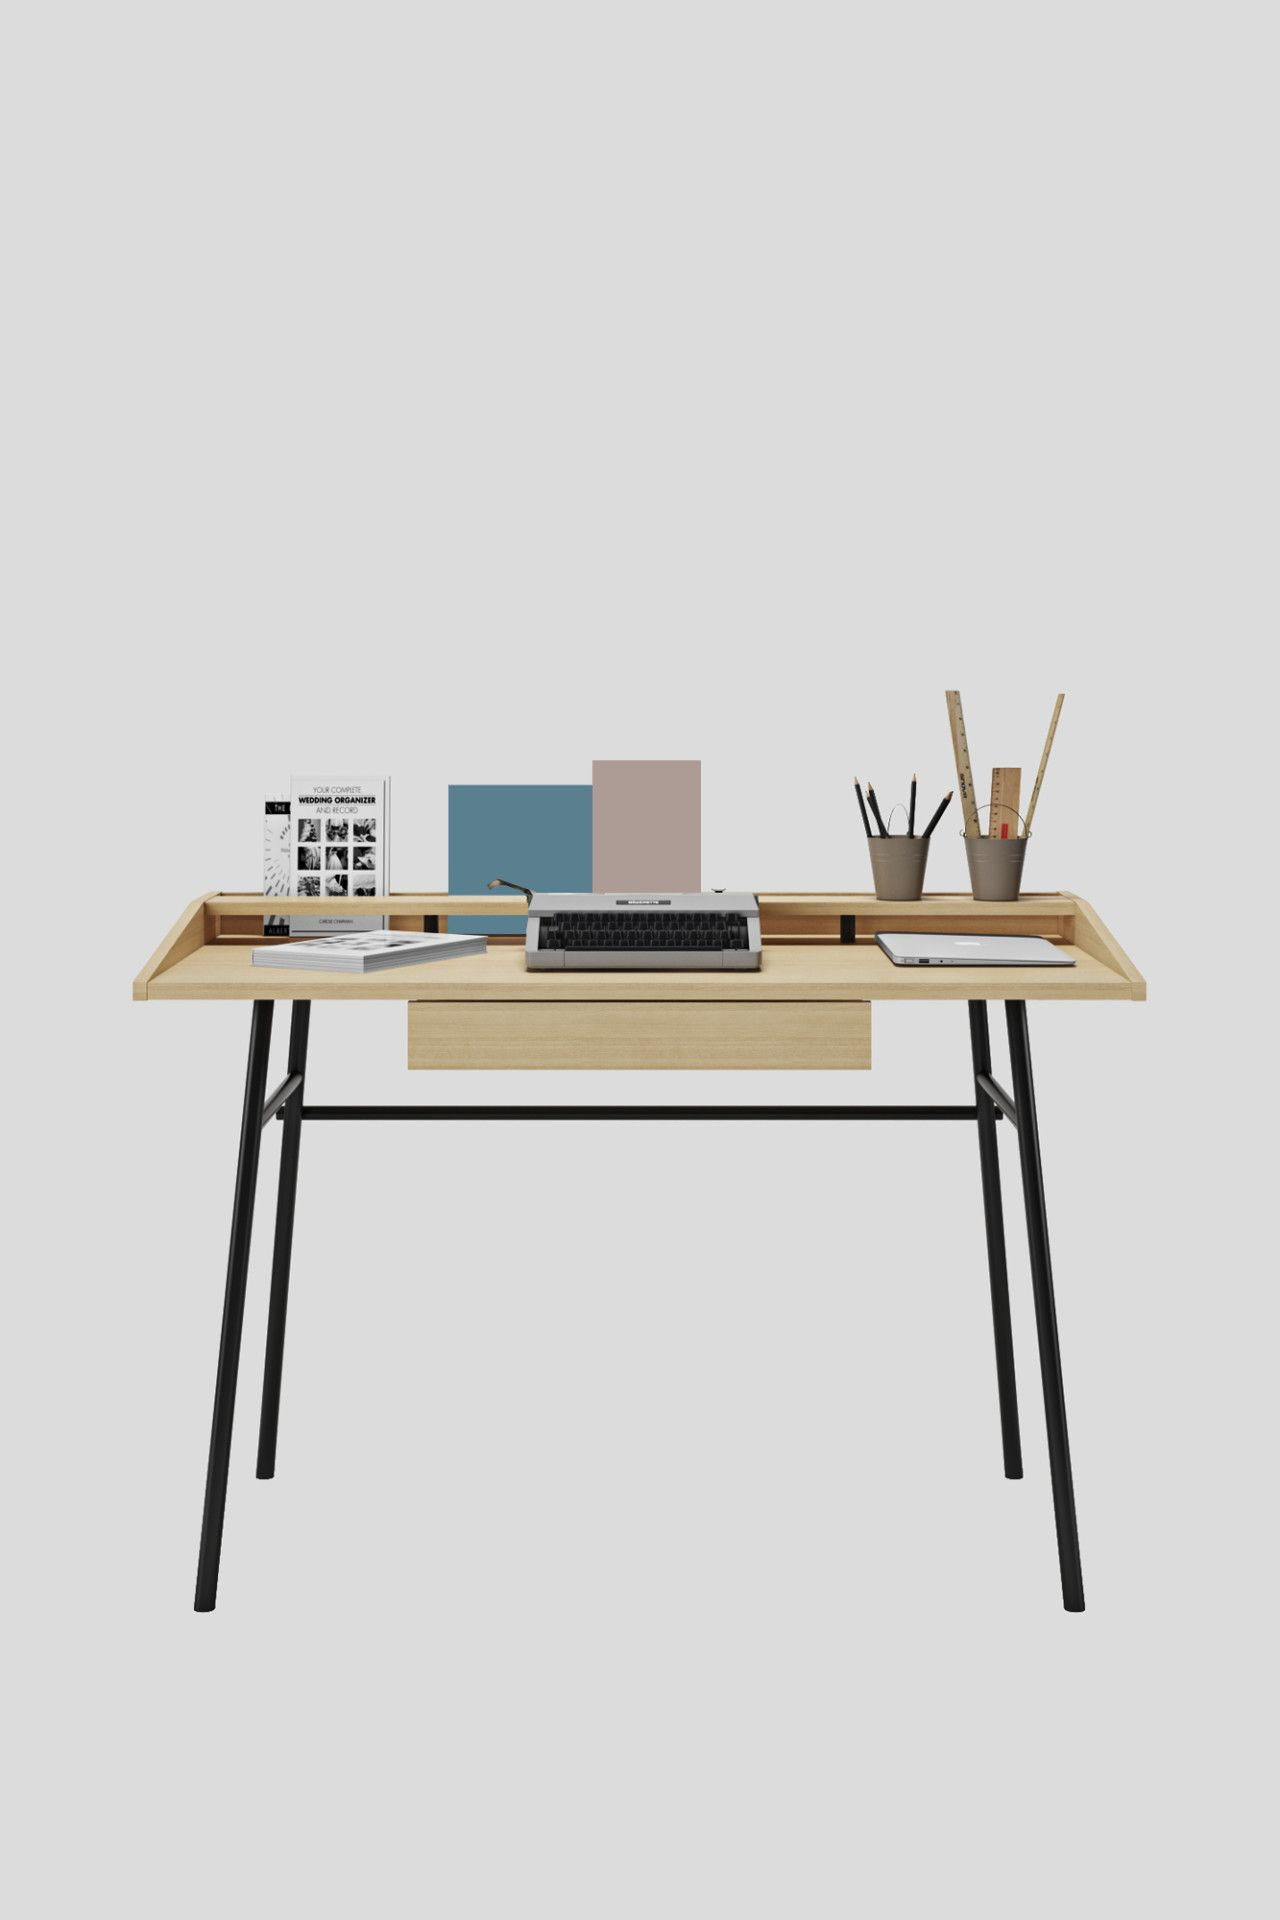 the ufo lift elevates standing desk design interior pinterest rh pinterest pt